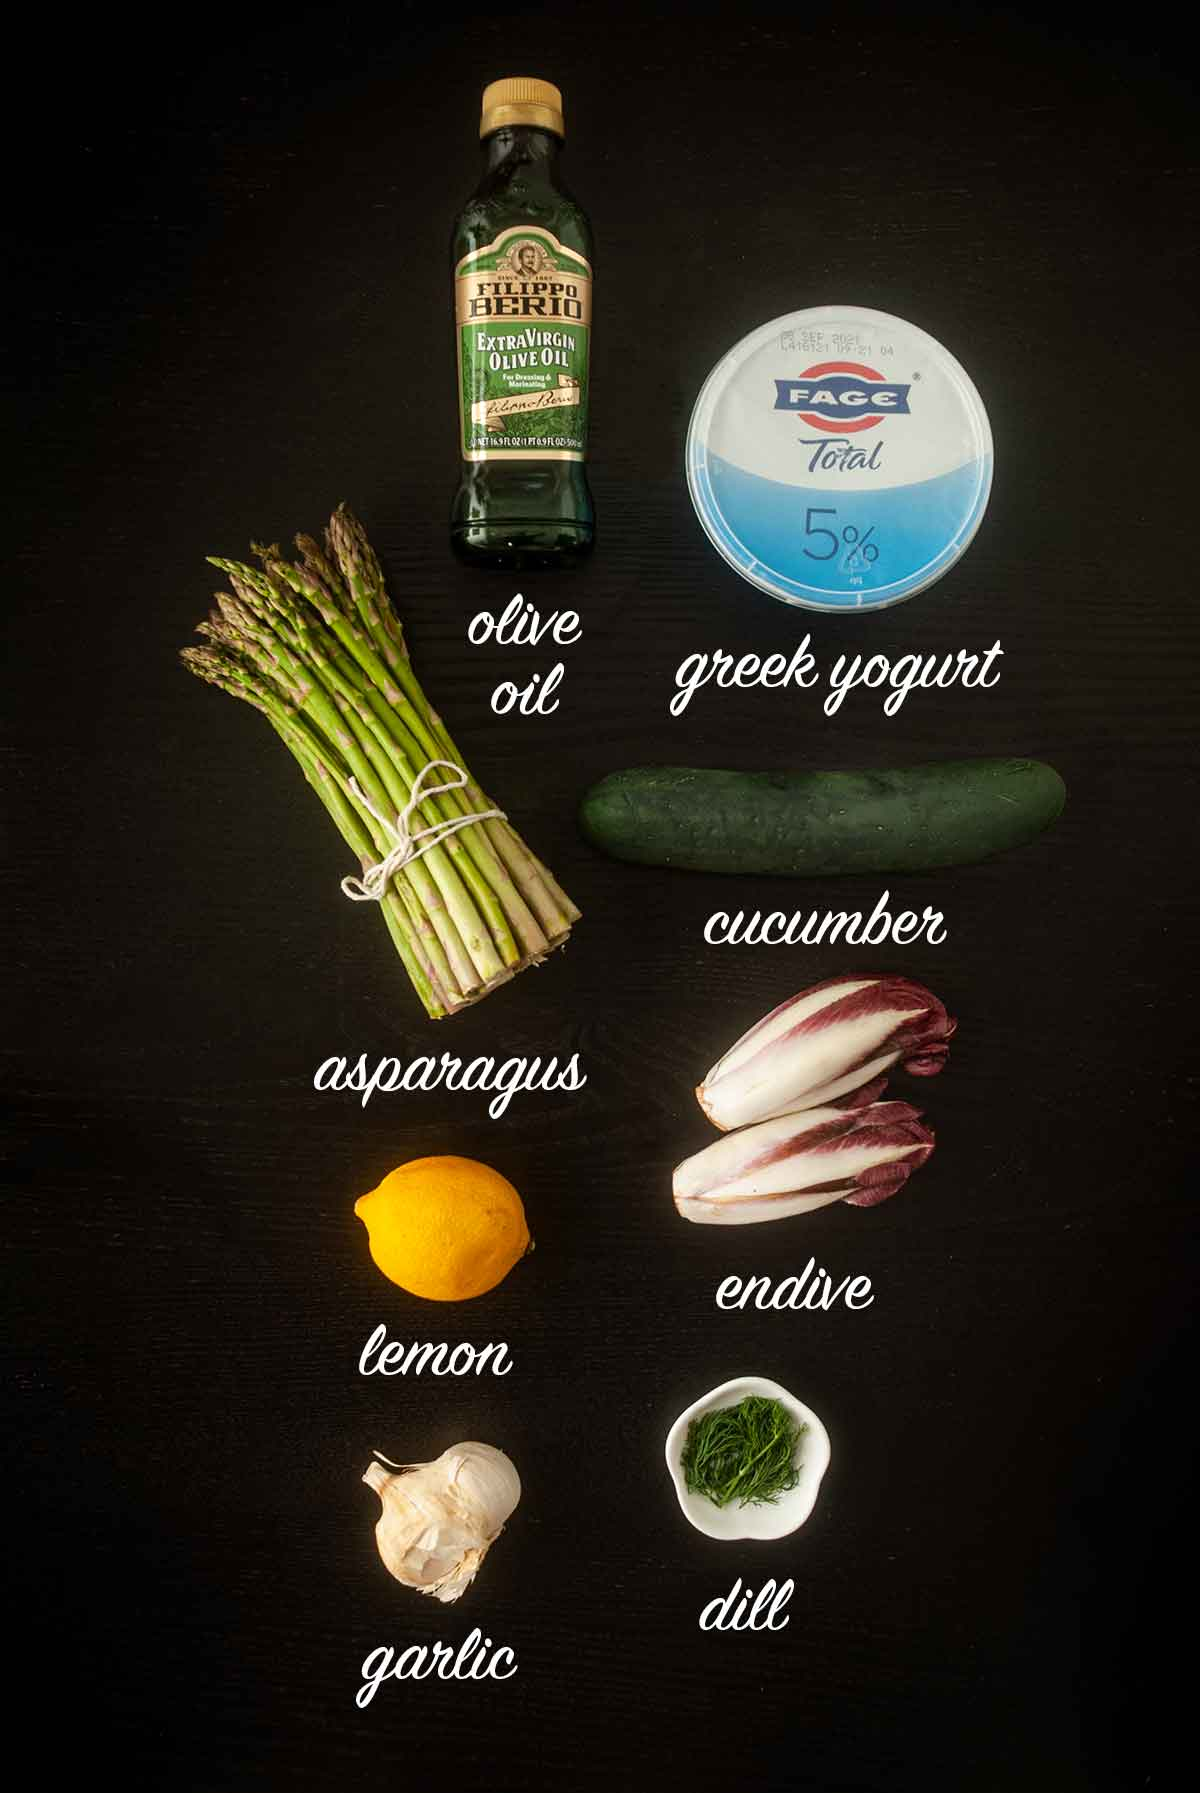 7 ingredients for making Tzatziki, endive and lemon asparagus with titles explaining what they are.